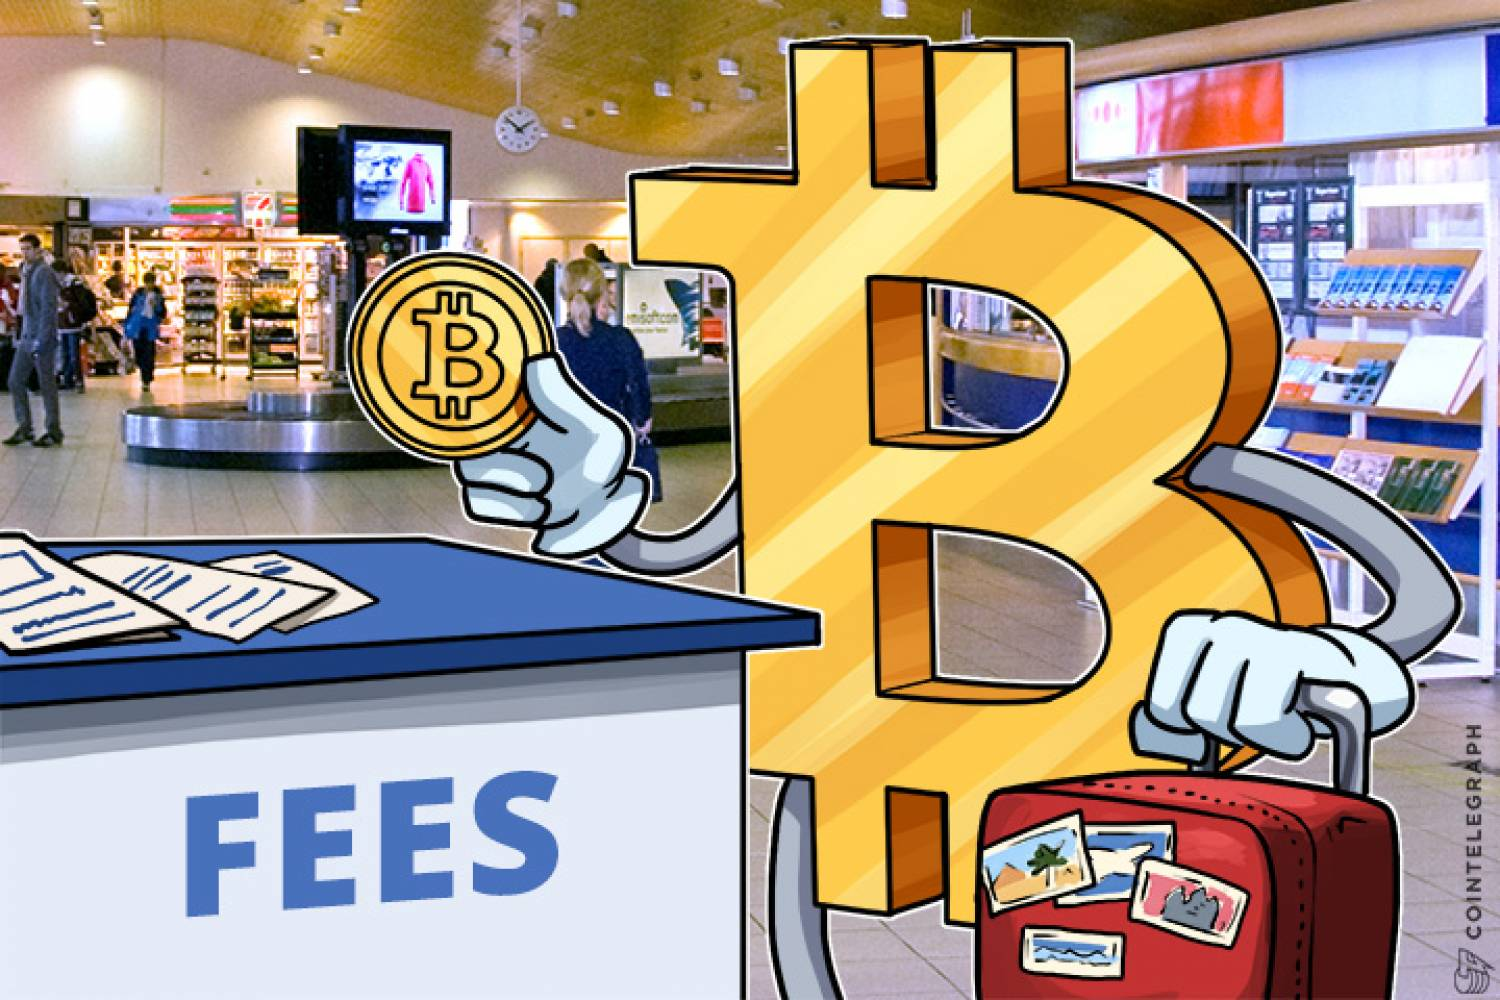 Bitcoin transaction fees and an airport